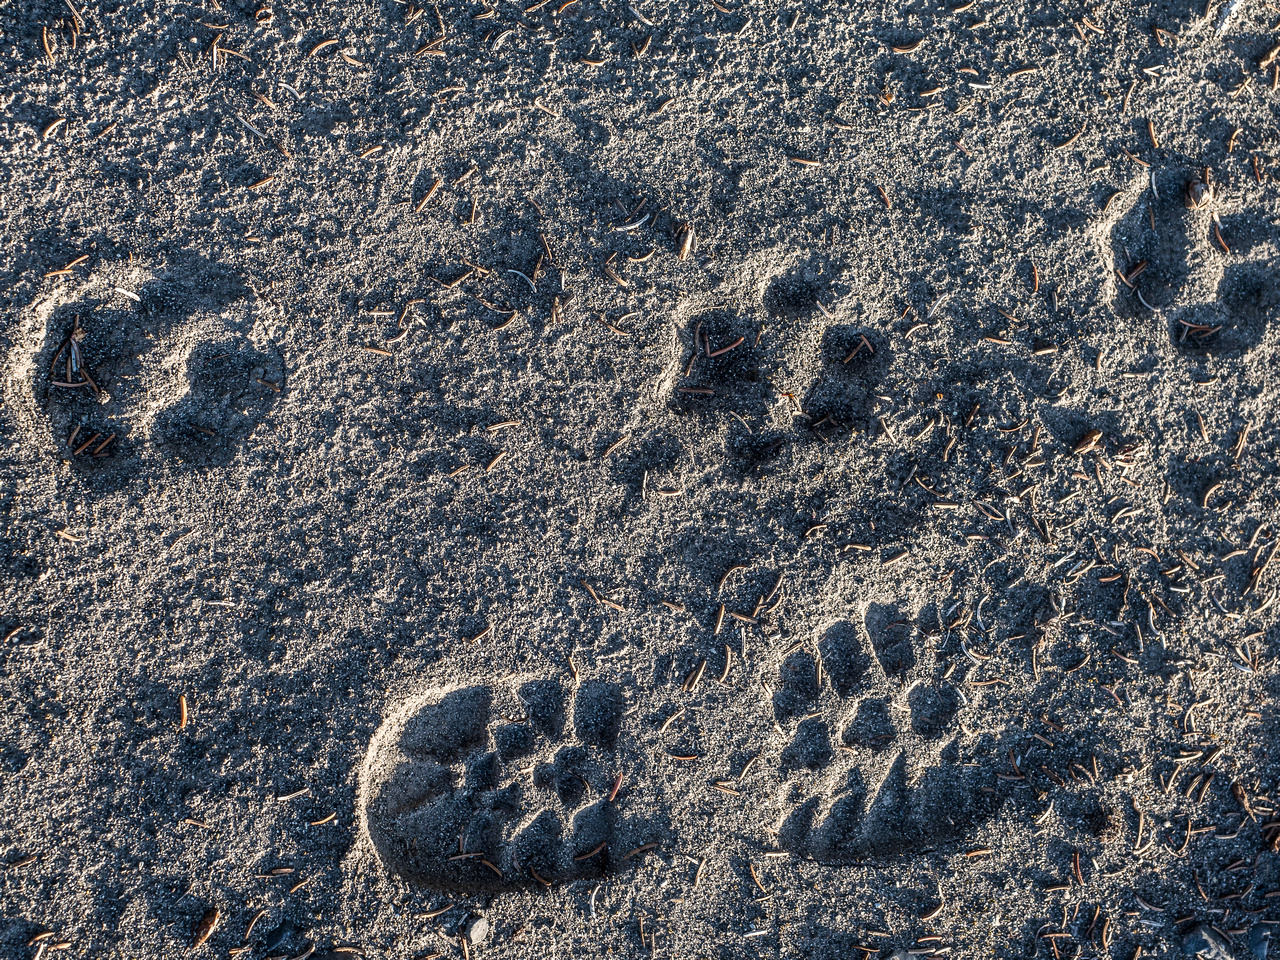 Tracks along the river flats included wolf, bear, dear, moose and of course, humans.